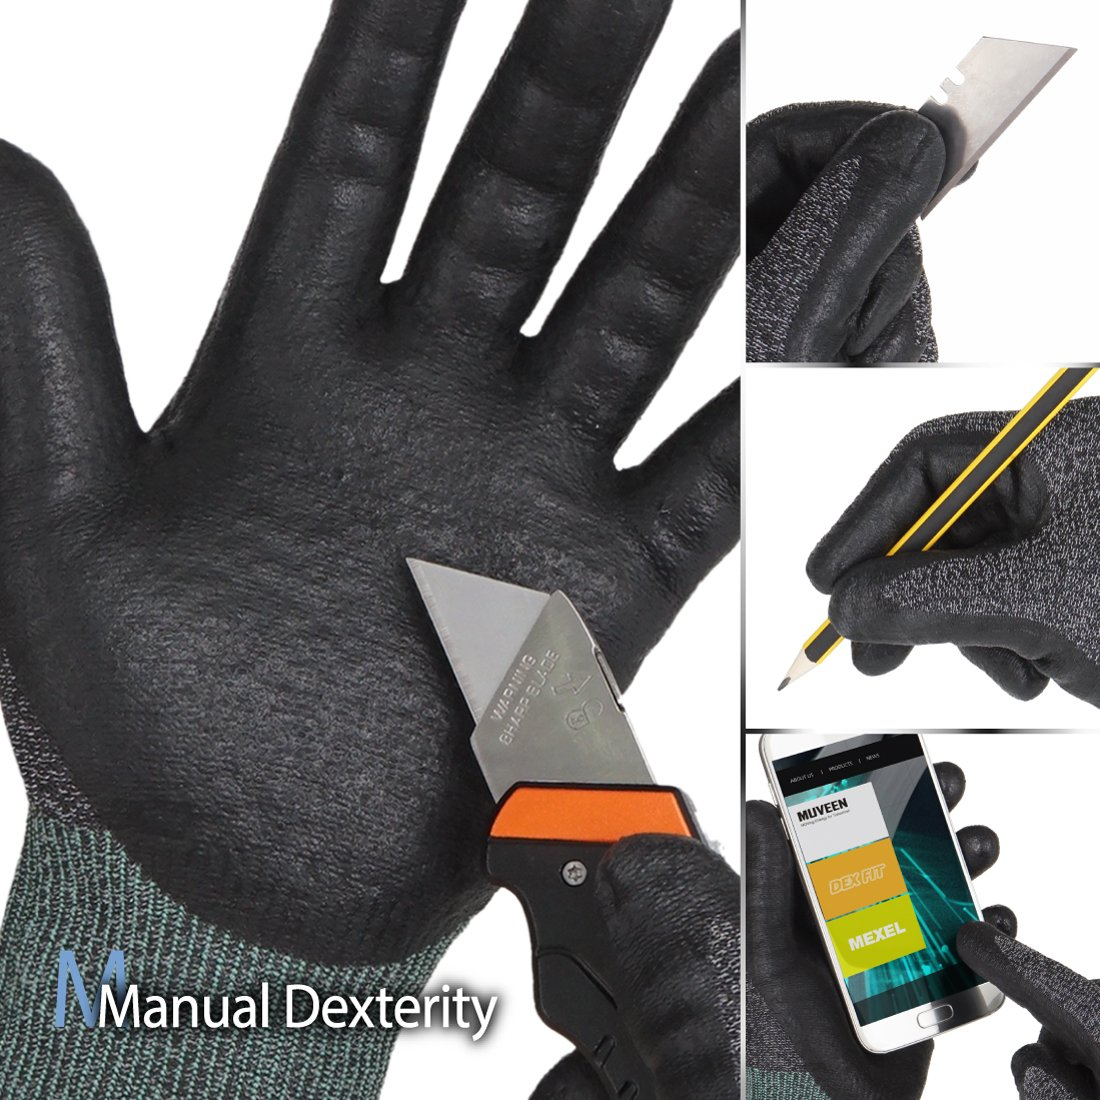 DEX FIT Utility 3D Cut Safety Gloves CR533, Comfort Stretch Fit, Power Grip, Smart Touch, Thin & Lightweight, Washable… 5